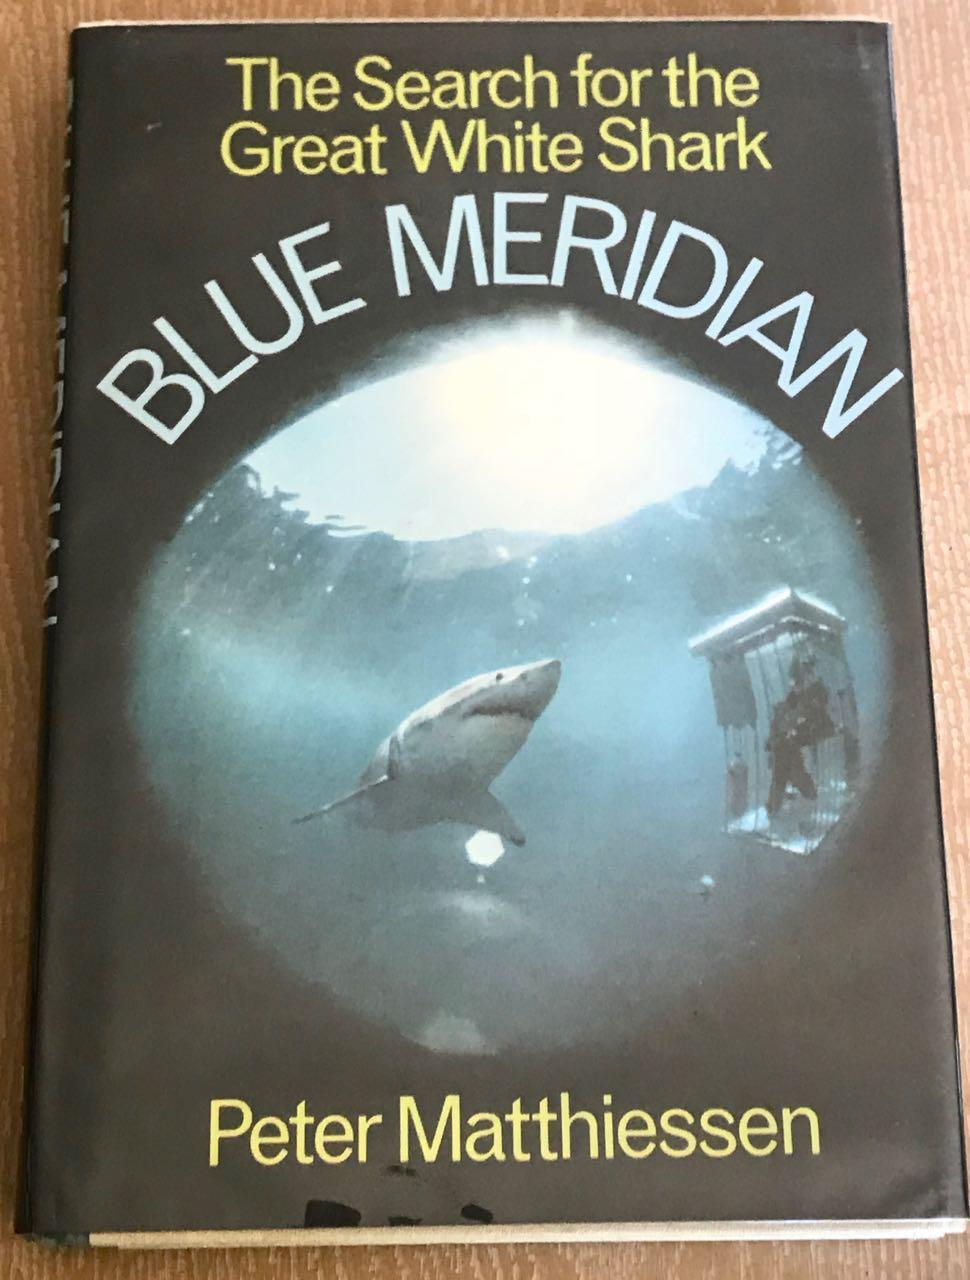 Blue Meridian/The Search for the Great White Shark. [Signed] Peter Matthiessen Near Fine Hardcover